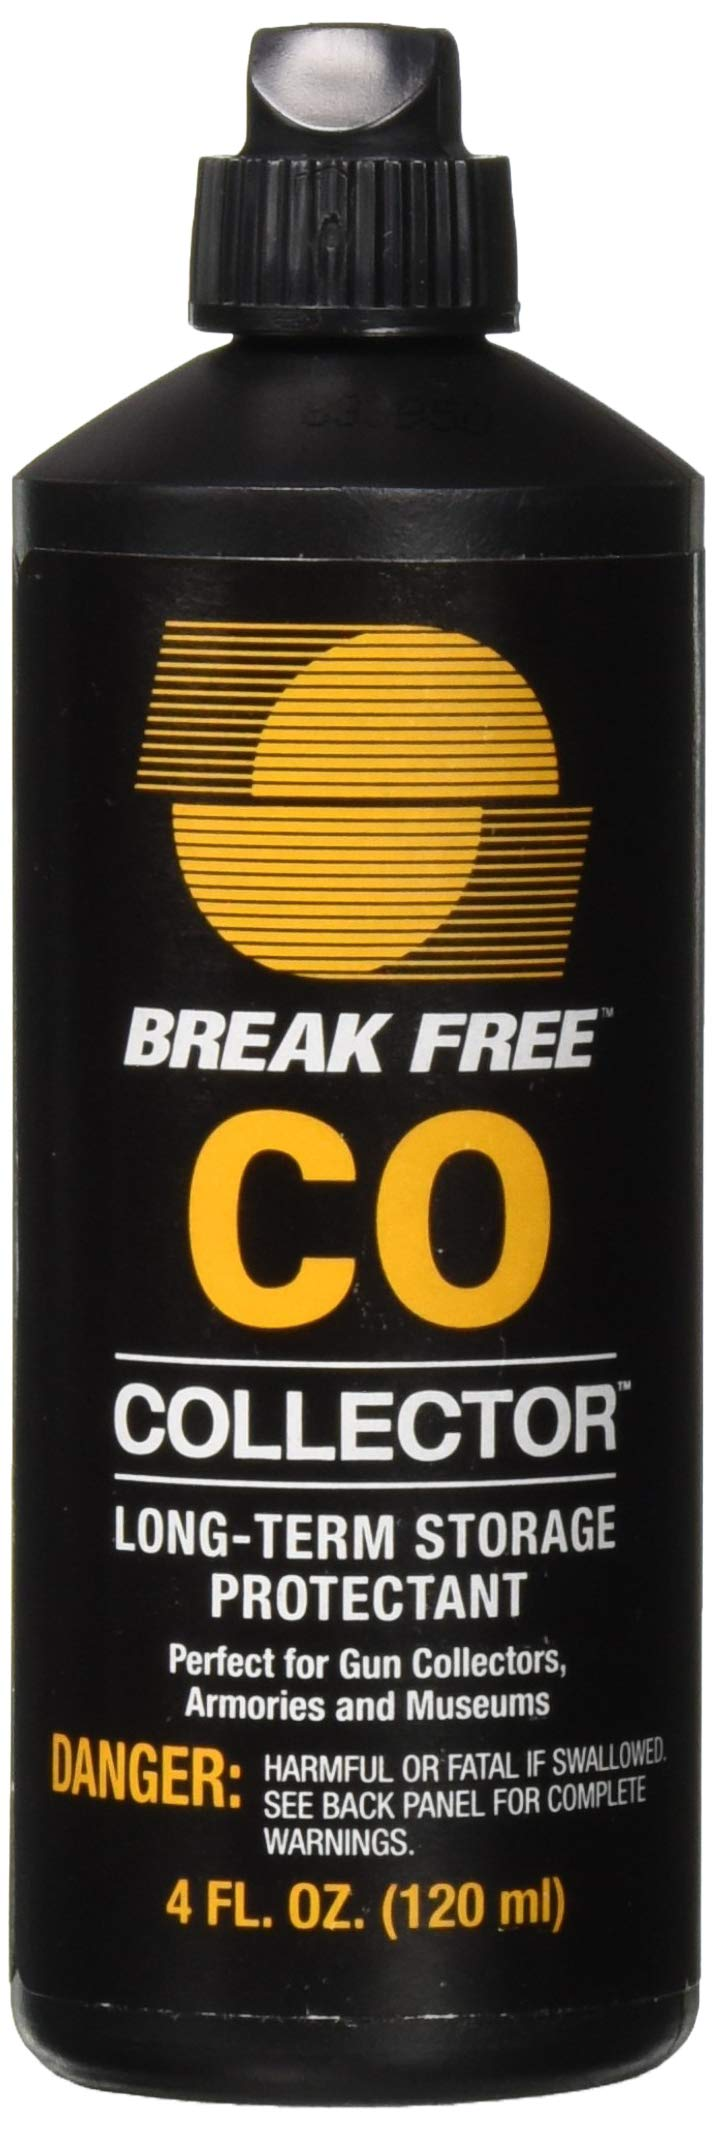 BreakFree Model: CO-4 Collector (2 Pack) by BreakFree